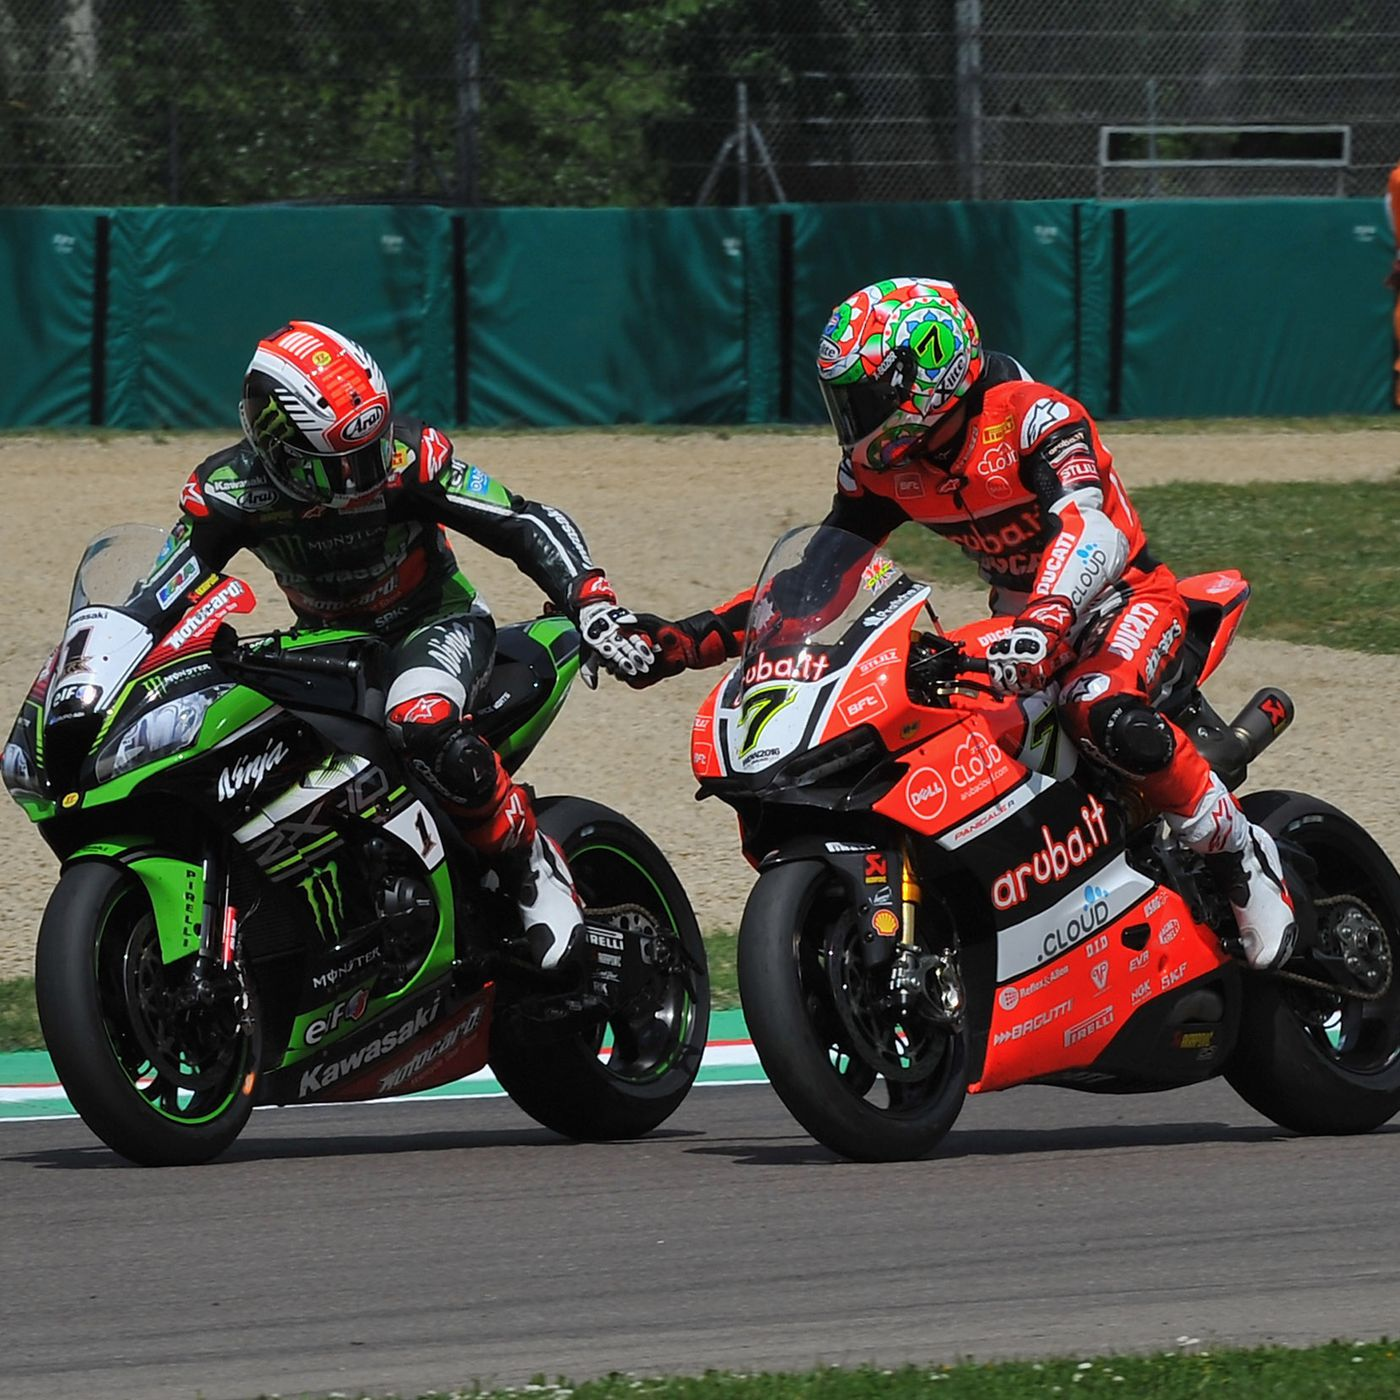 Six Superbike Riders Who Could Make An Impact In Motogp Stanley Cup Of Chowder